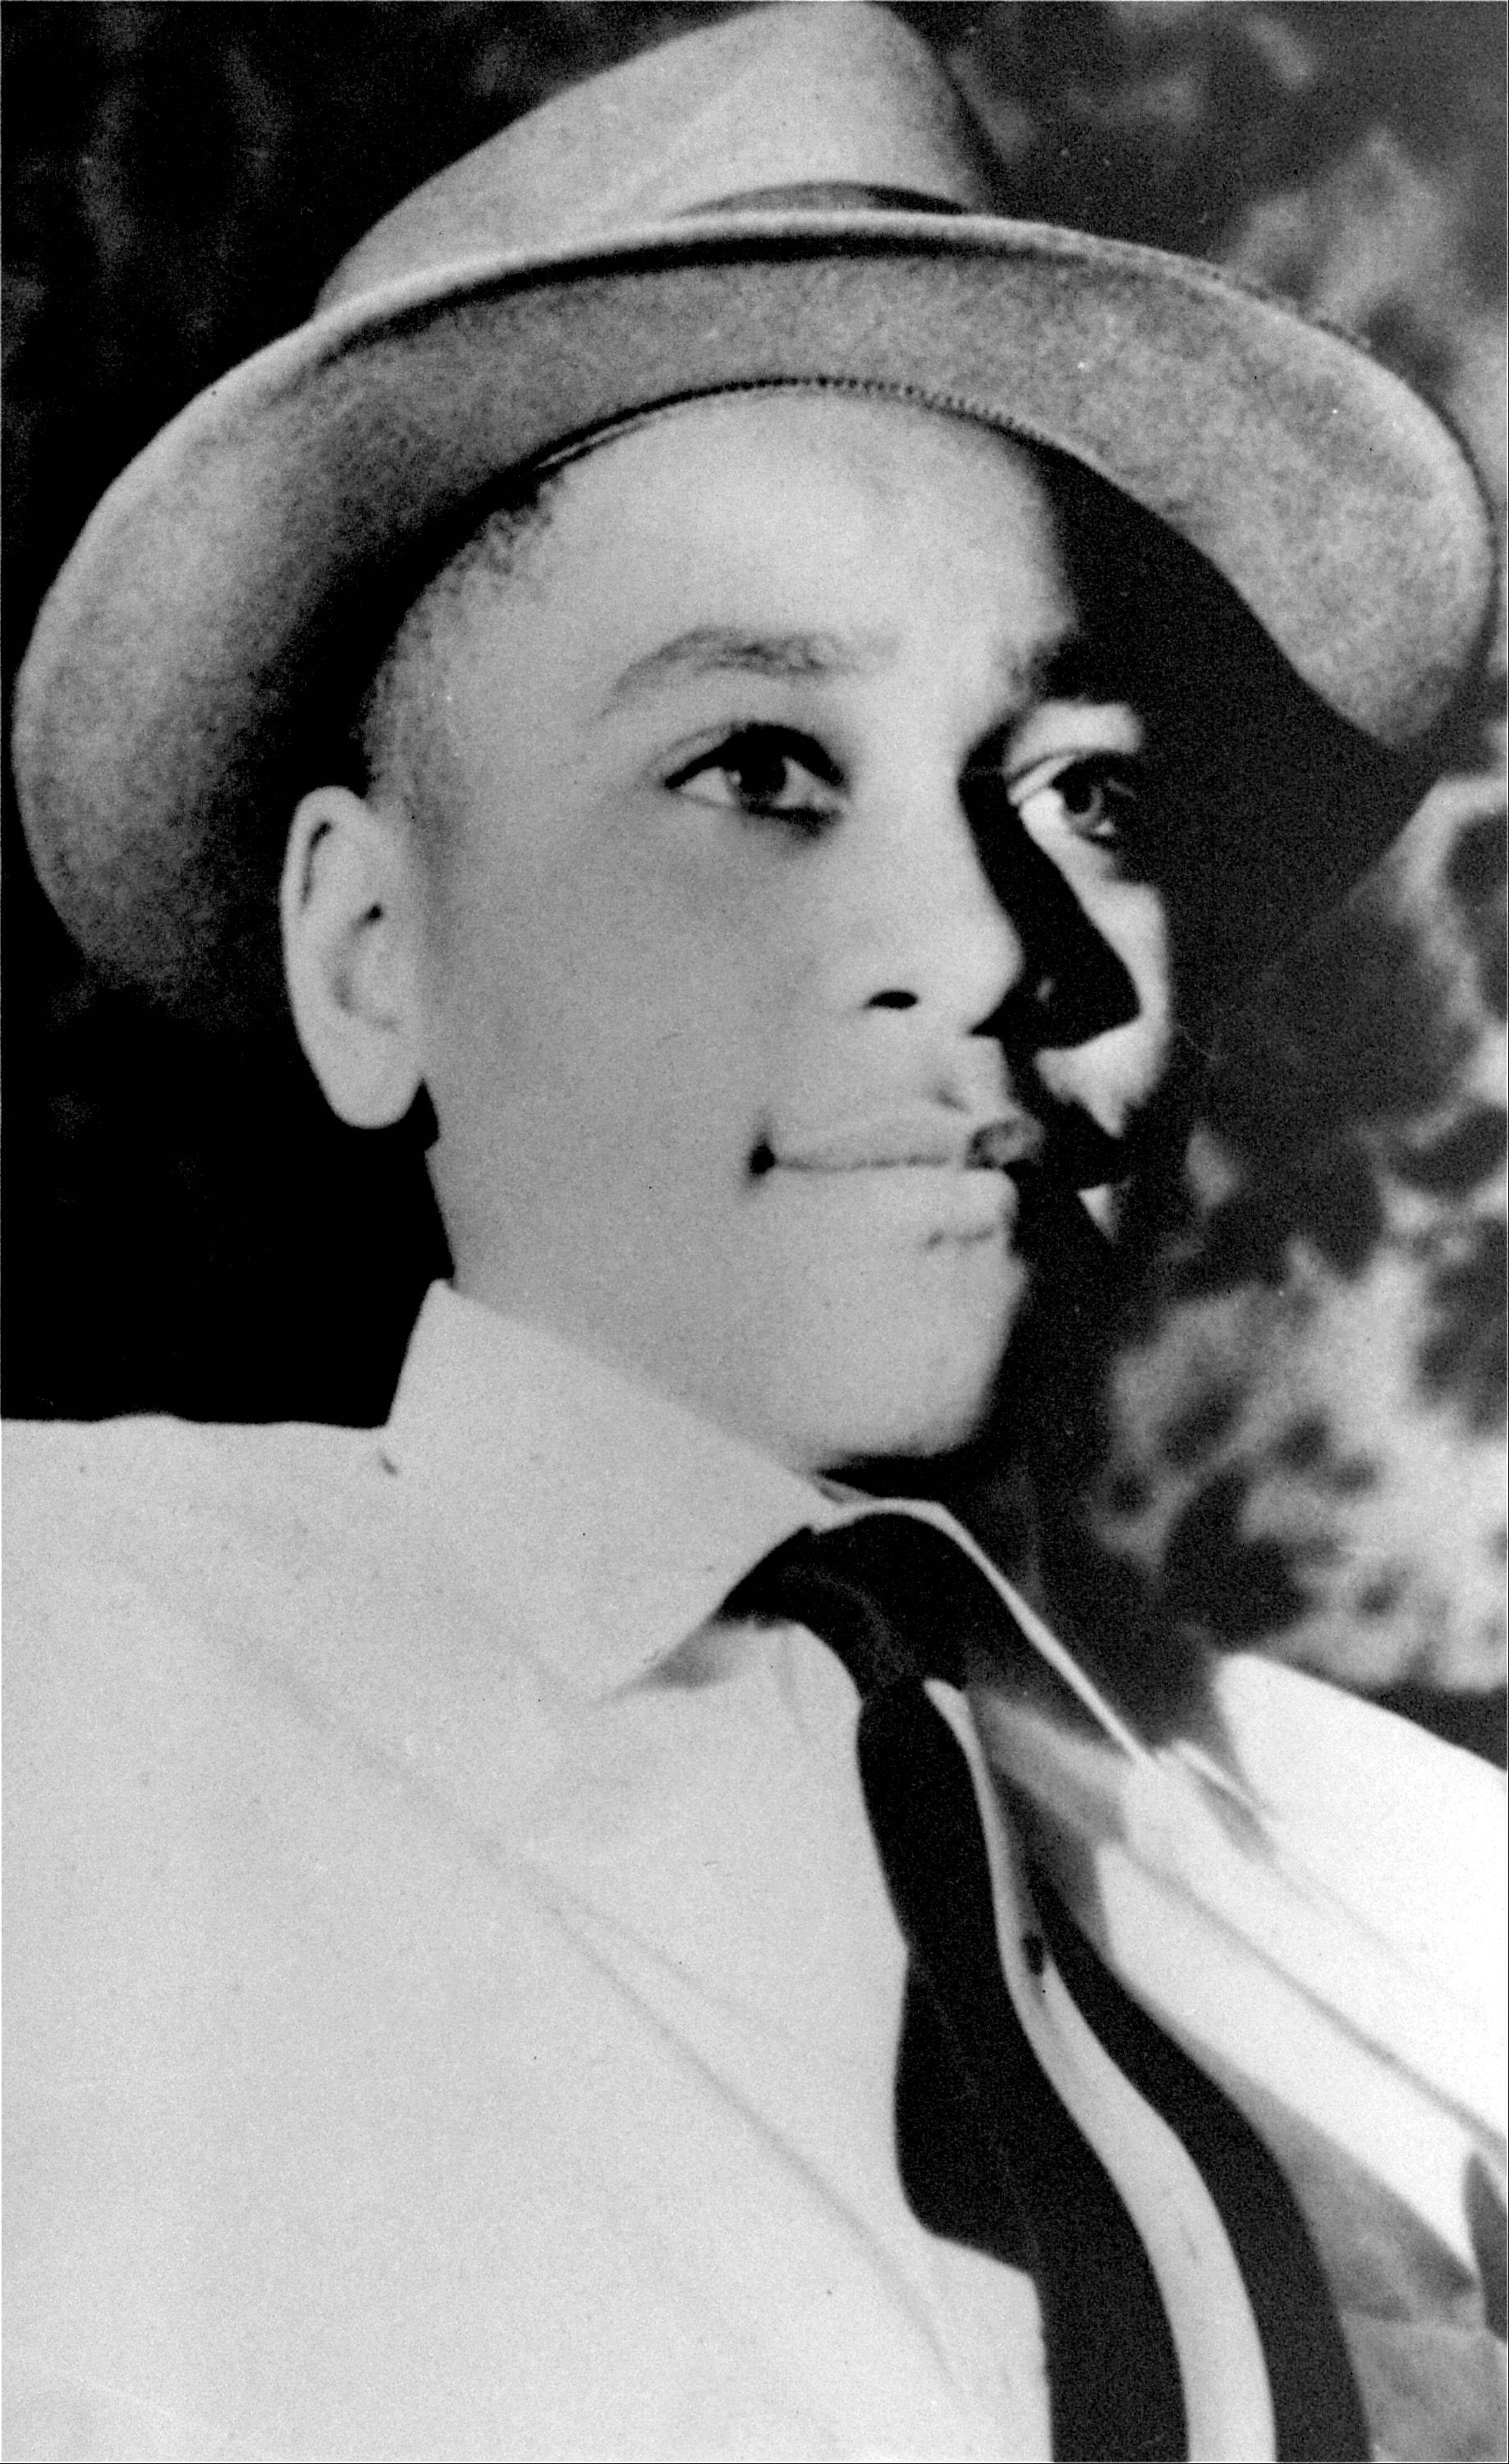 The lynching of 14-year-old Emmett Till in 1955 galvanized the civil rights movement.